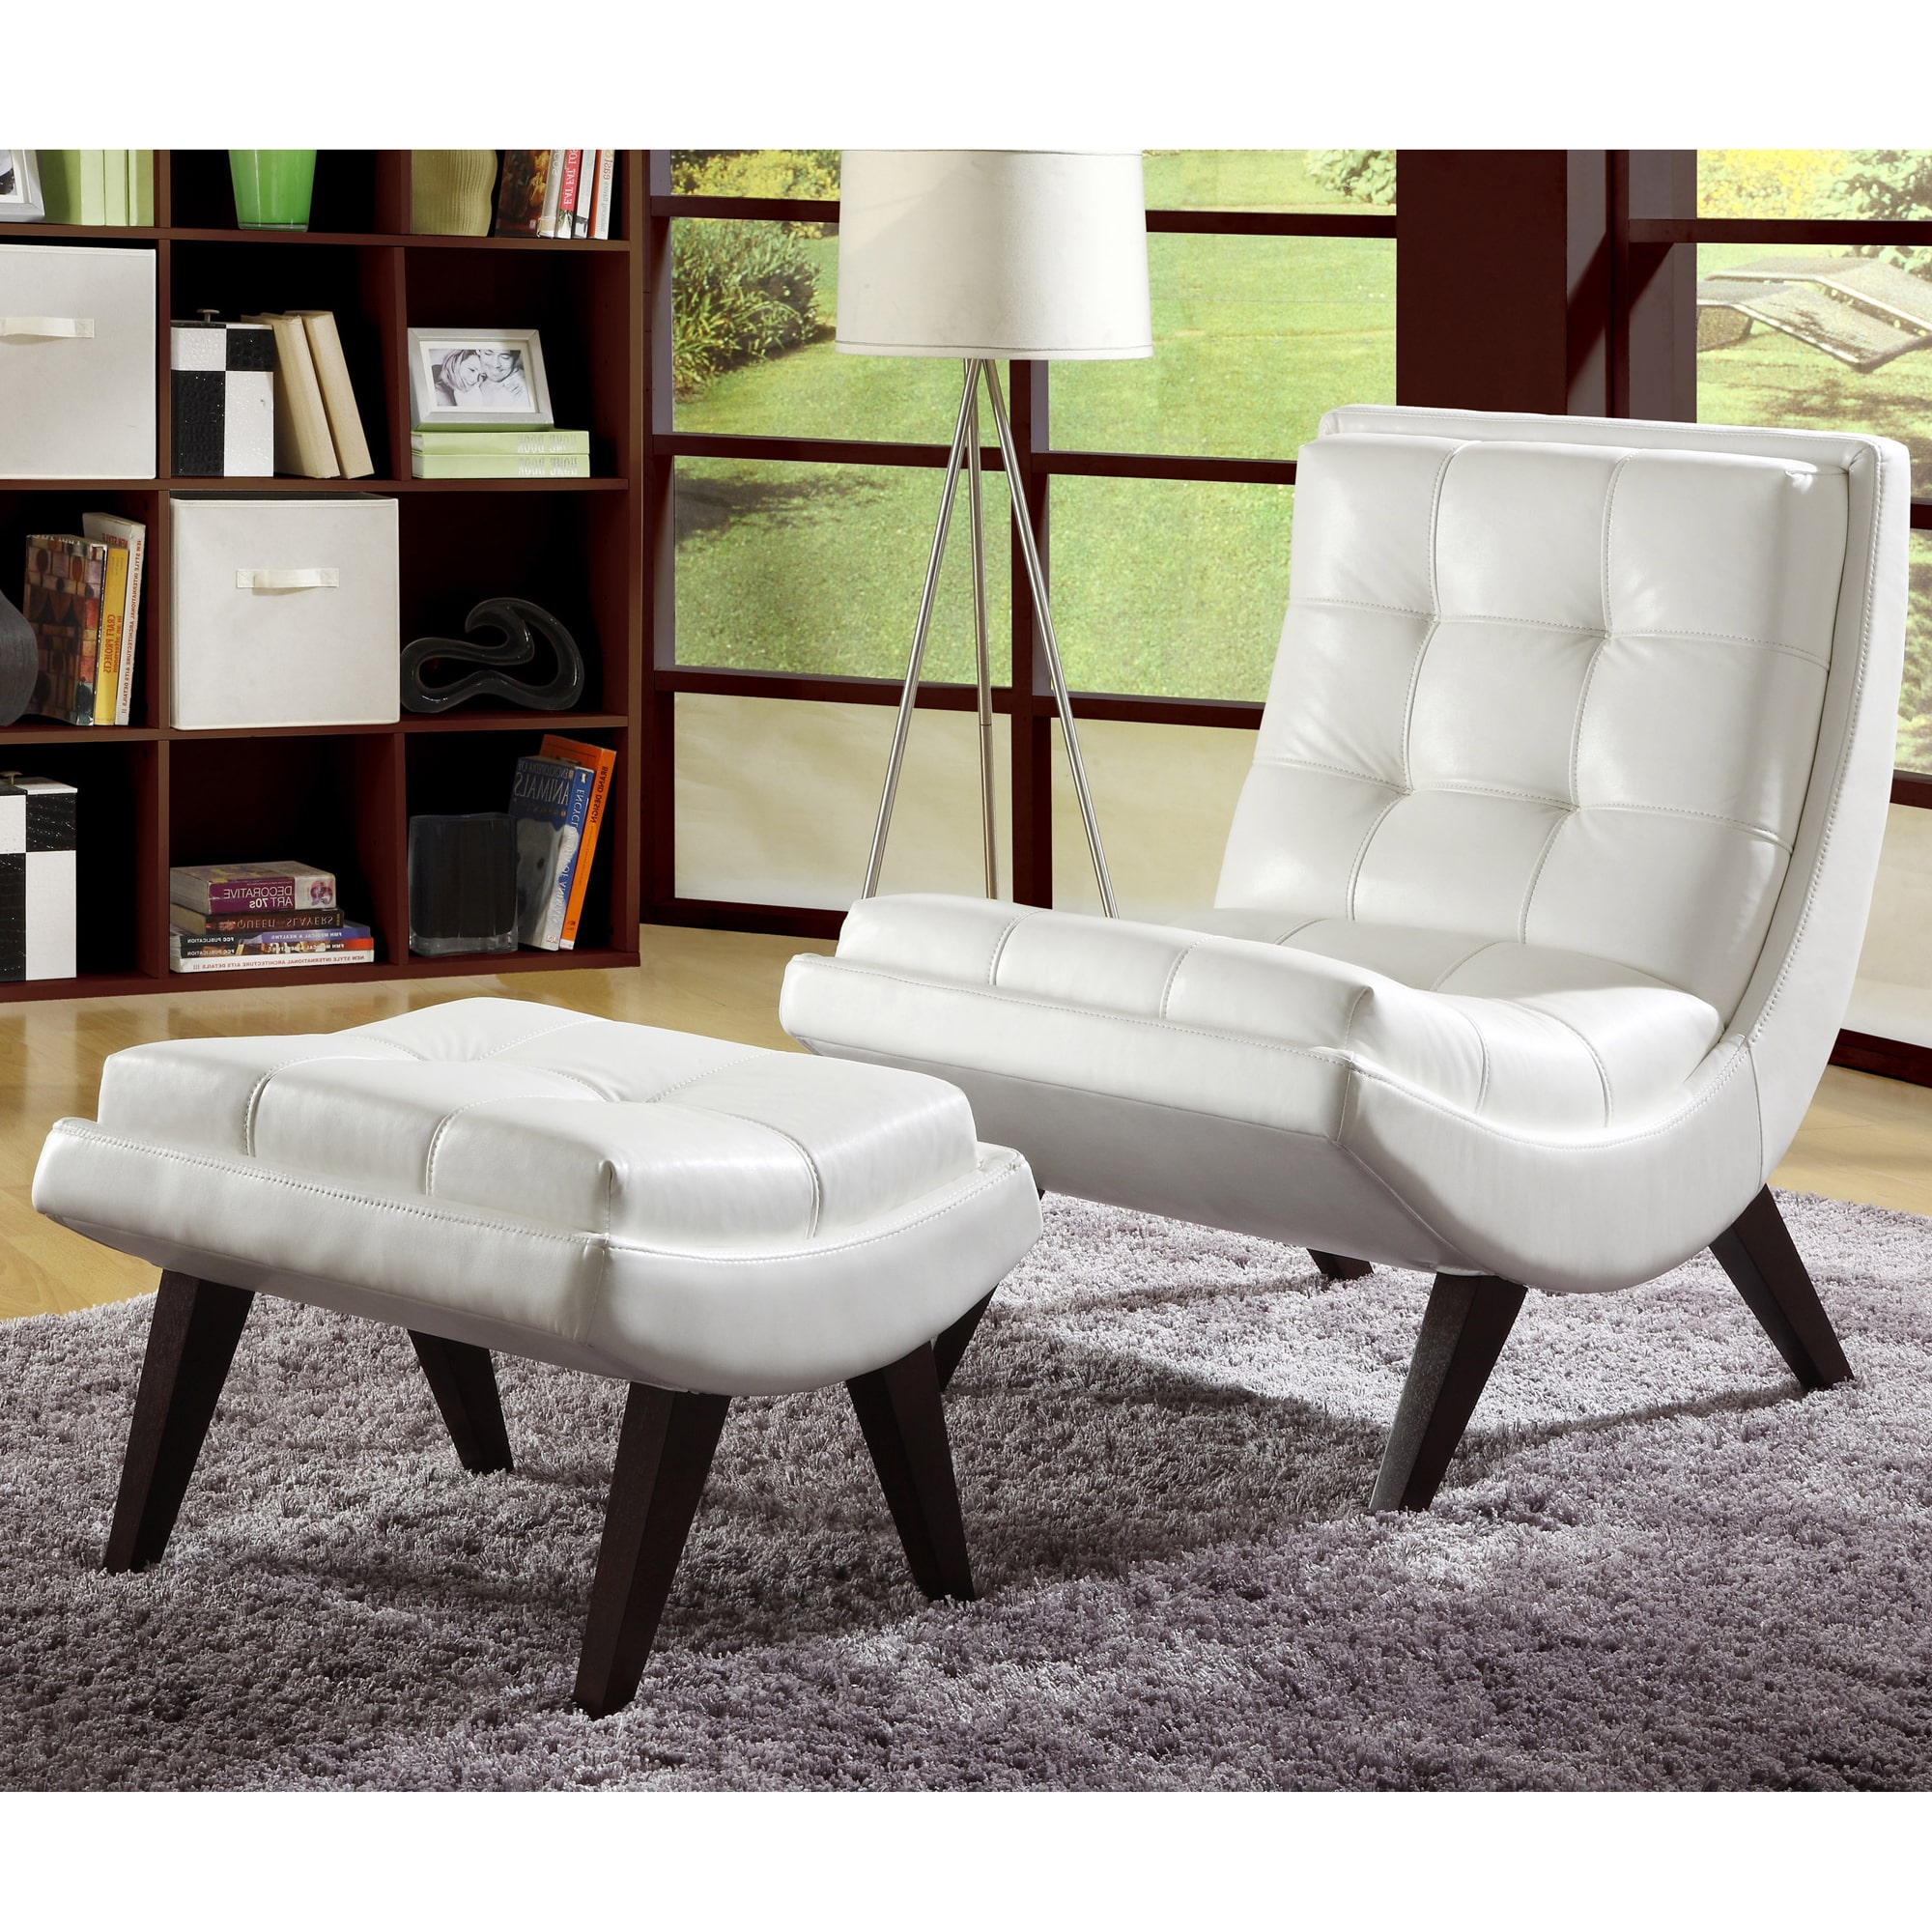 INSPIRE Q Albury White Faux Leather Chair With Ottoman   Walmart.com